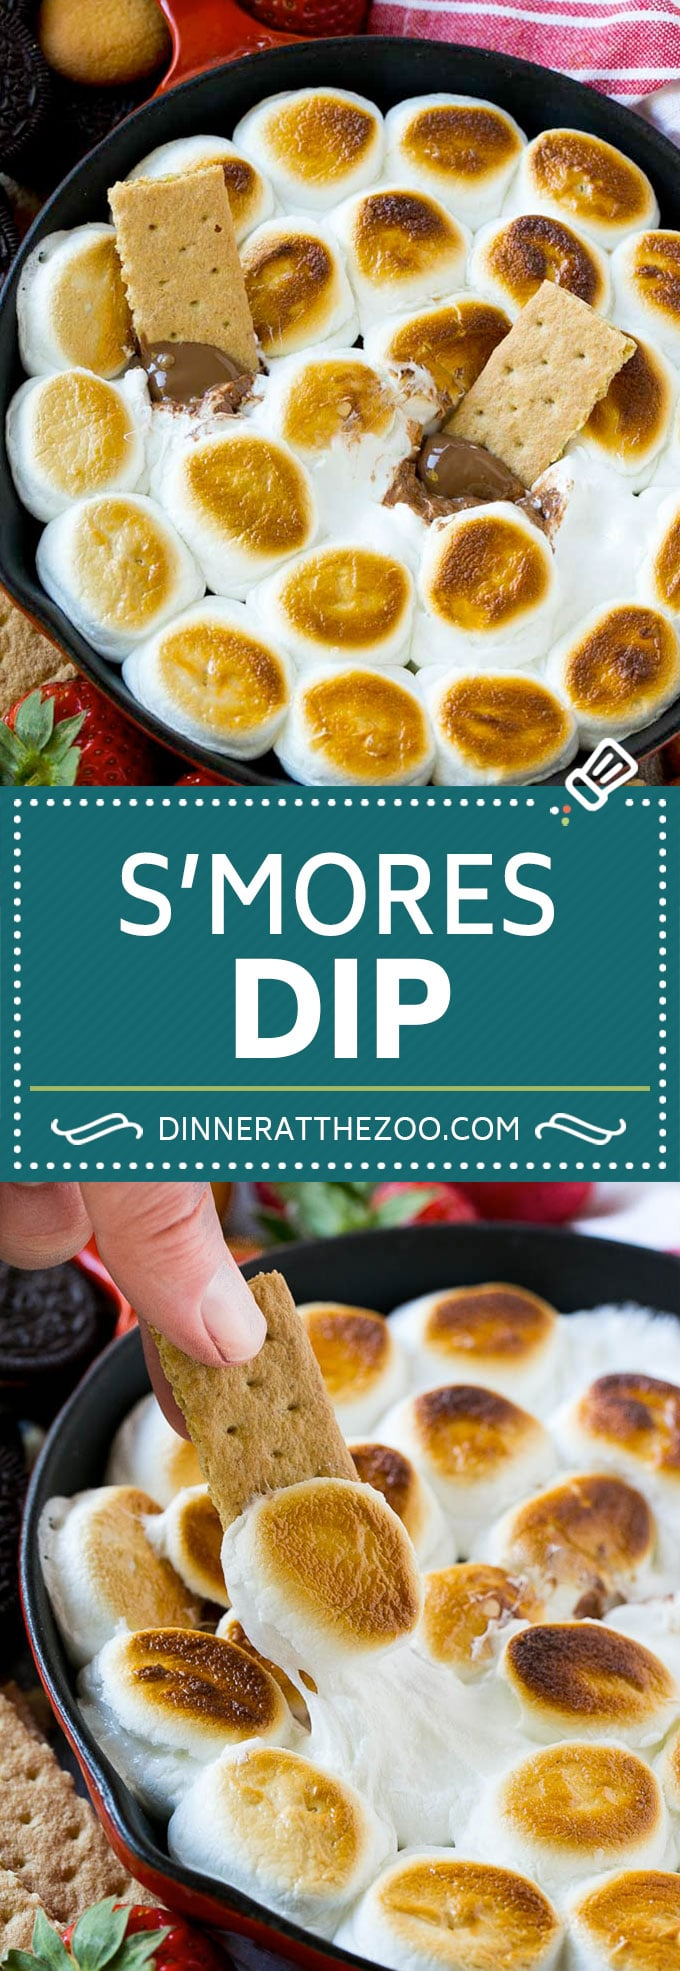 S'mores Dip Recipe | S'mores Skillet | Baked S'mores #smores #dip #chocolate #marshmallow #dessert #dinneratthezoo